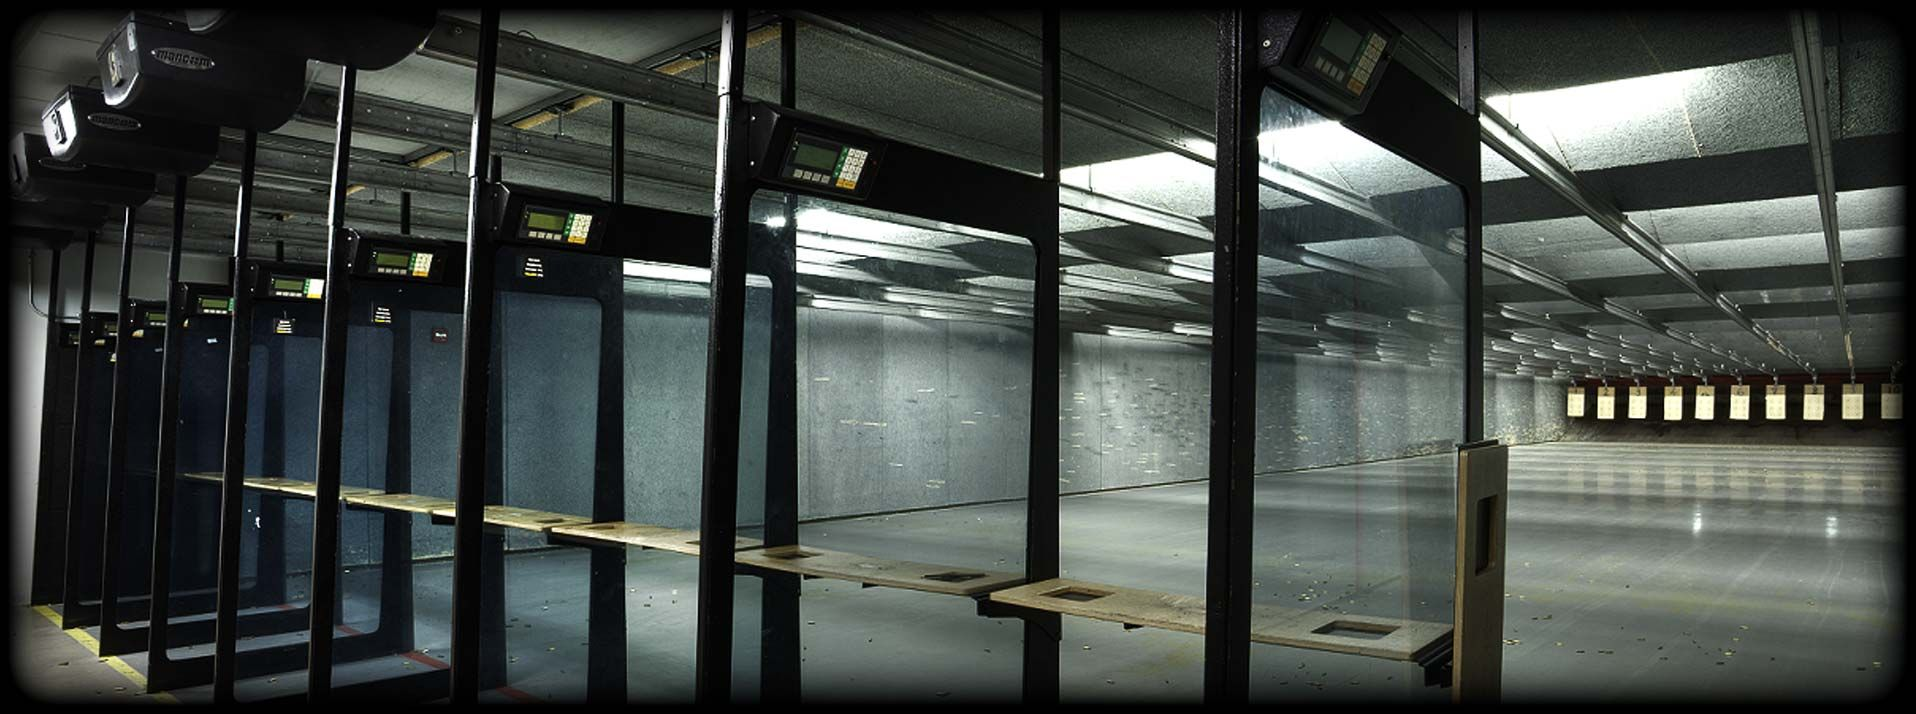 LAX Range Long Beach Shooting Range, For A Long Time.